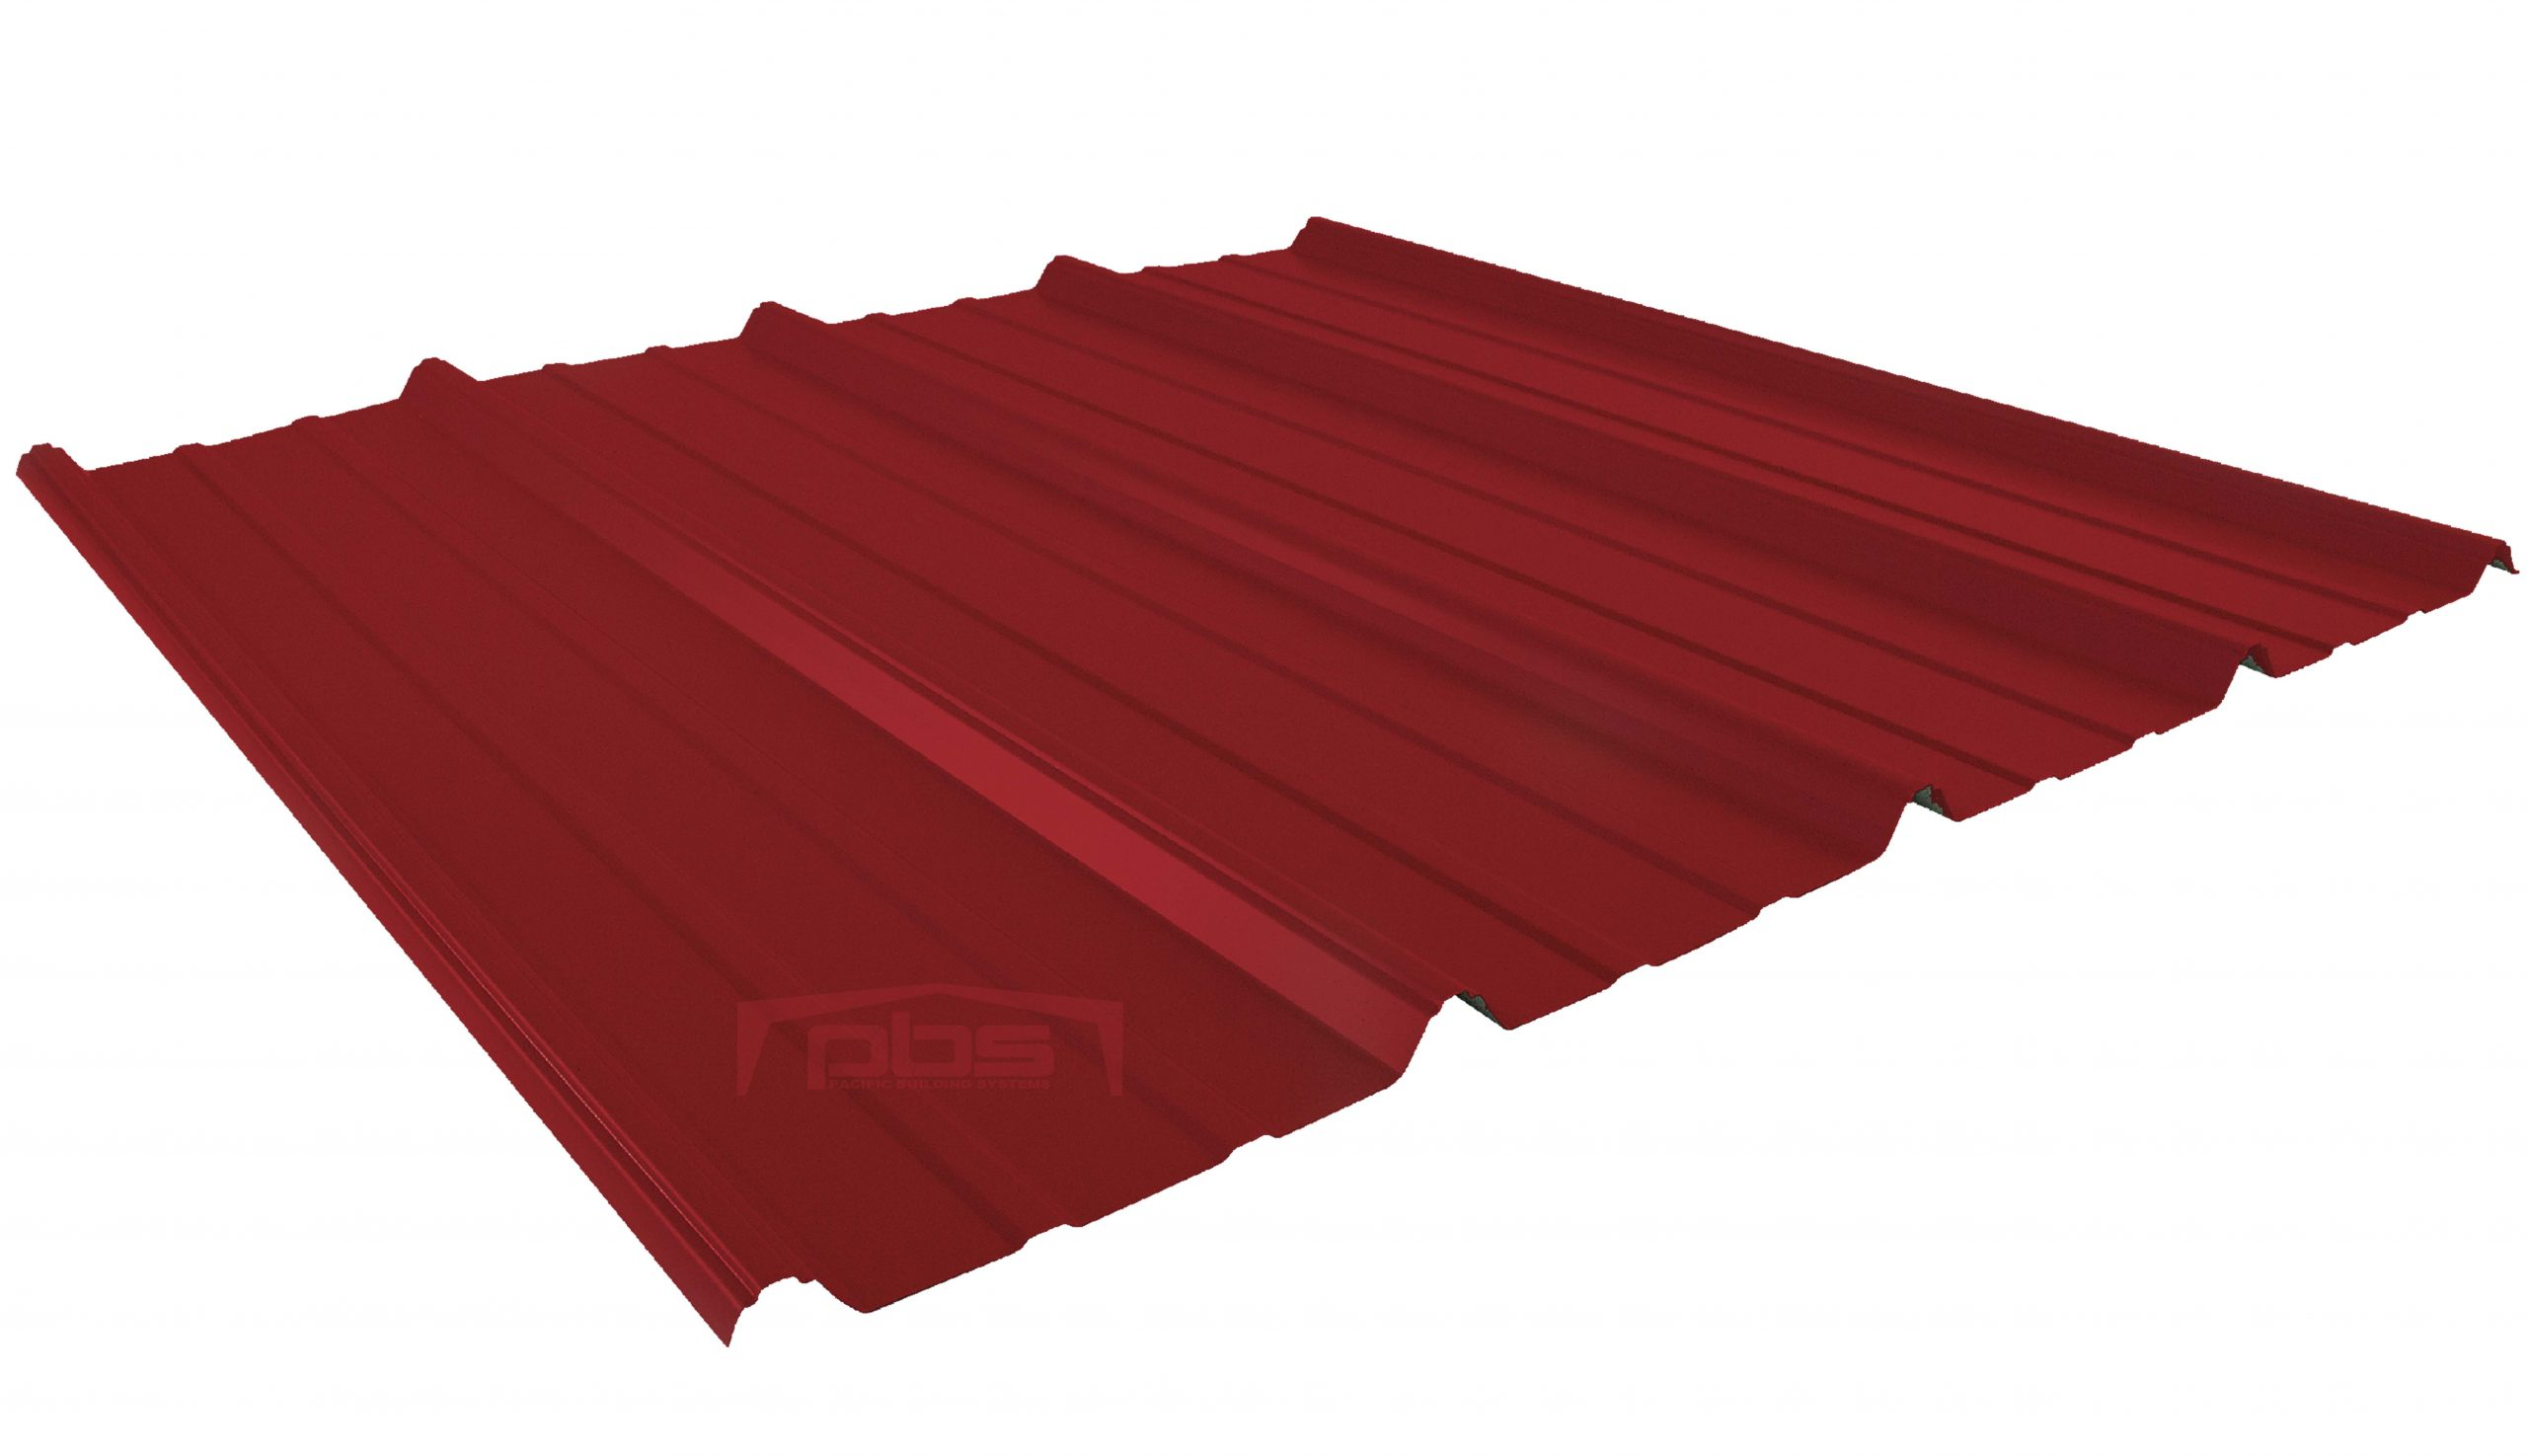 Tuff Rib Panel is an economical, structural, light gauge through-fastener roof and wall panel that is an excellent choice for commercial, industrial and agricultural applications.